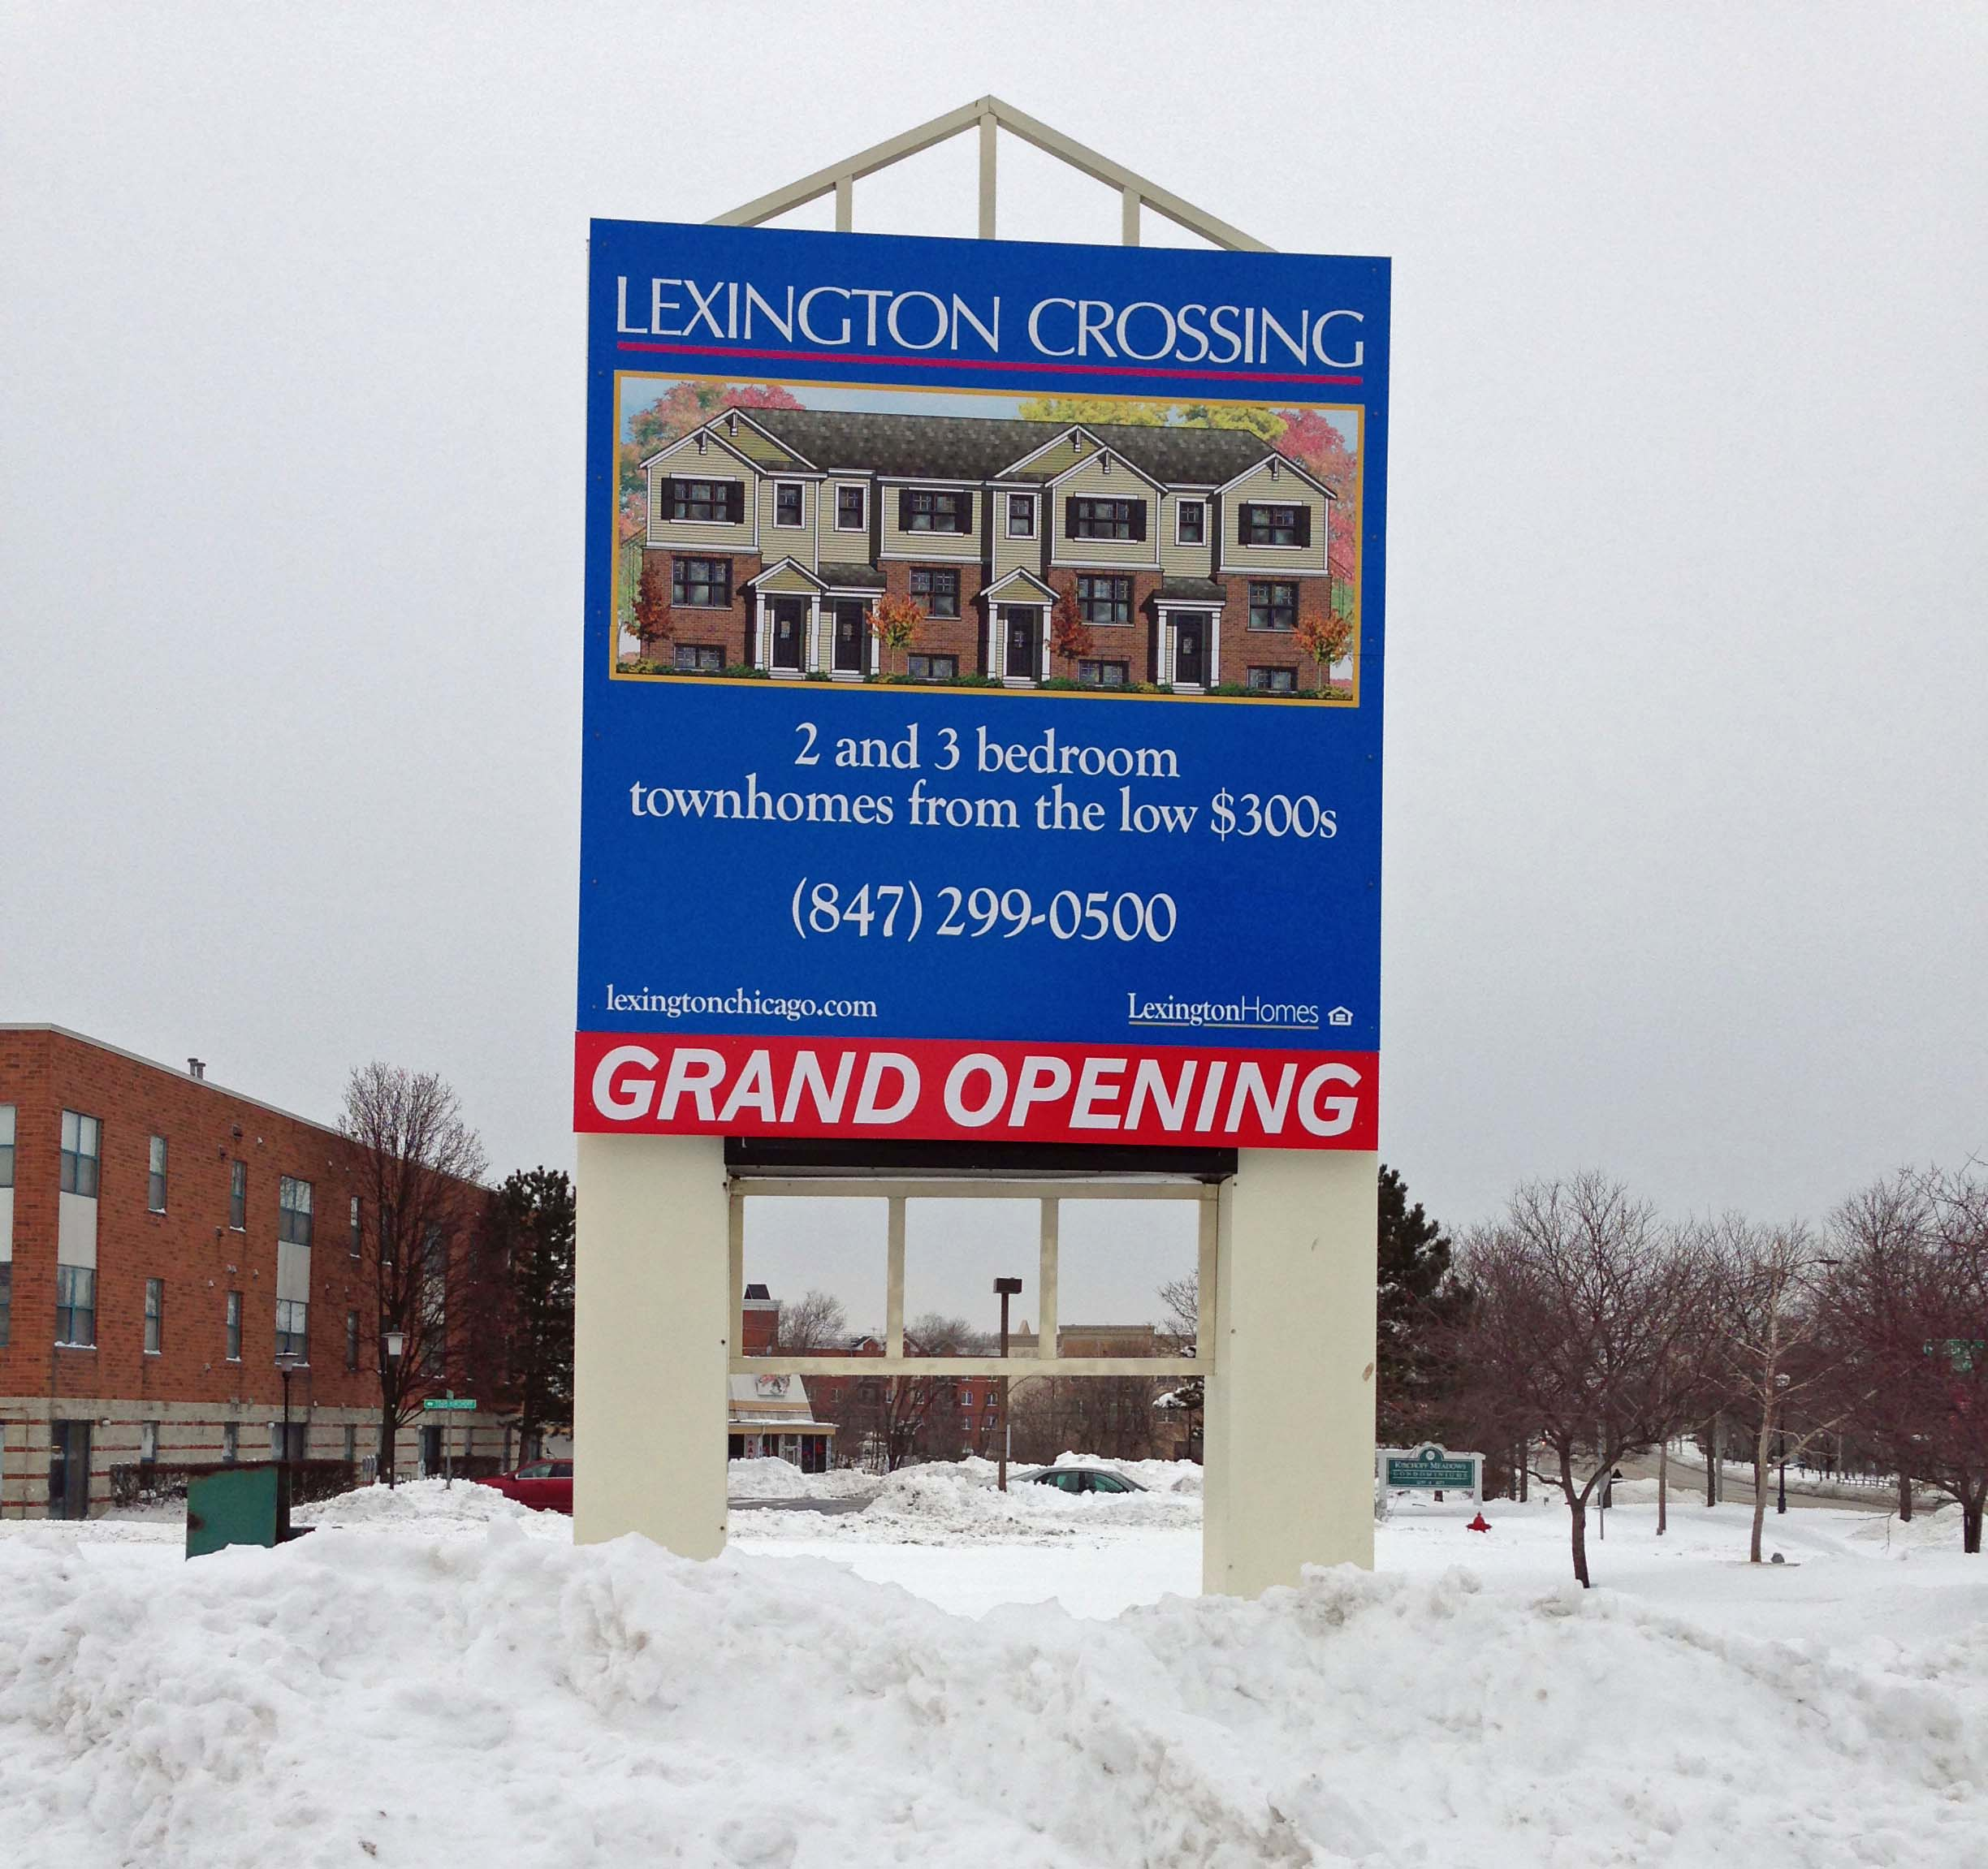 New Townhome Construction Chicago Suburbs: Grand Opening At Lexington Crossing In Rolling Meadows